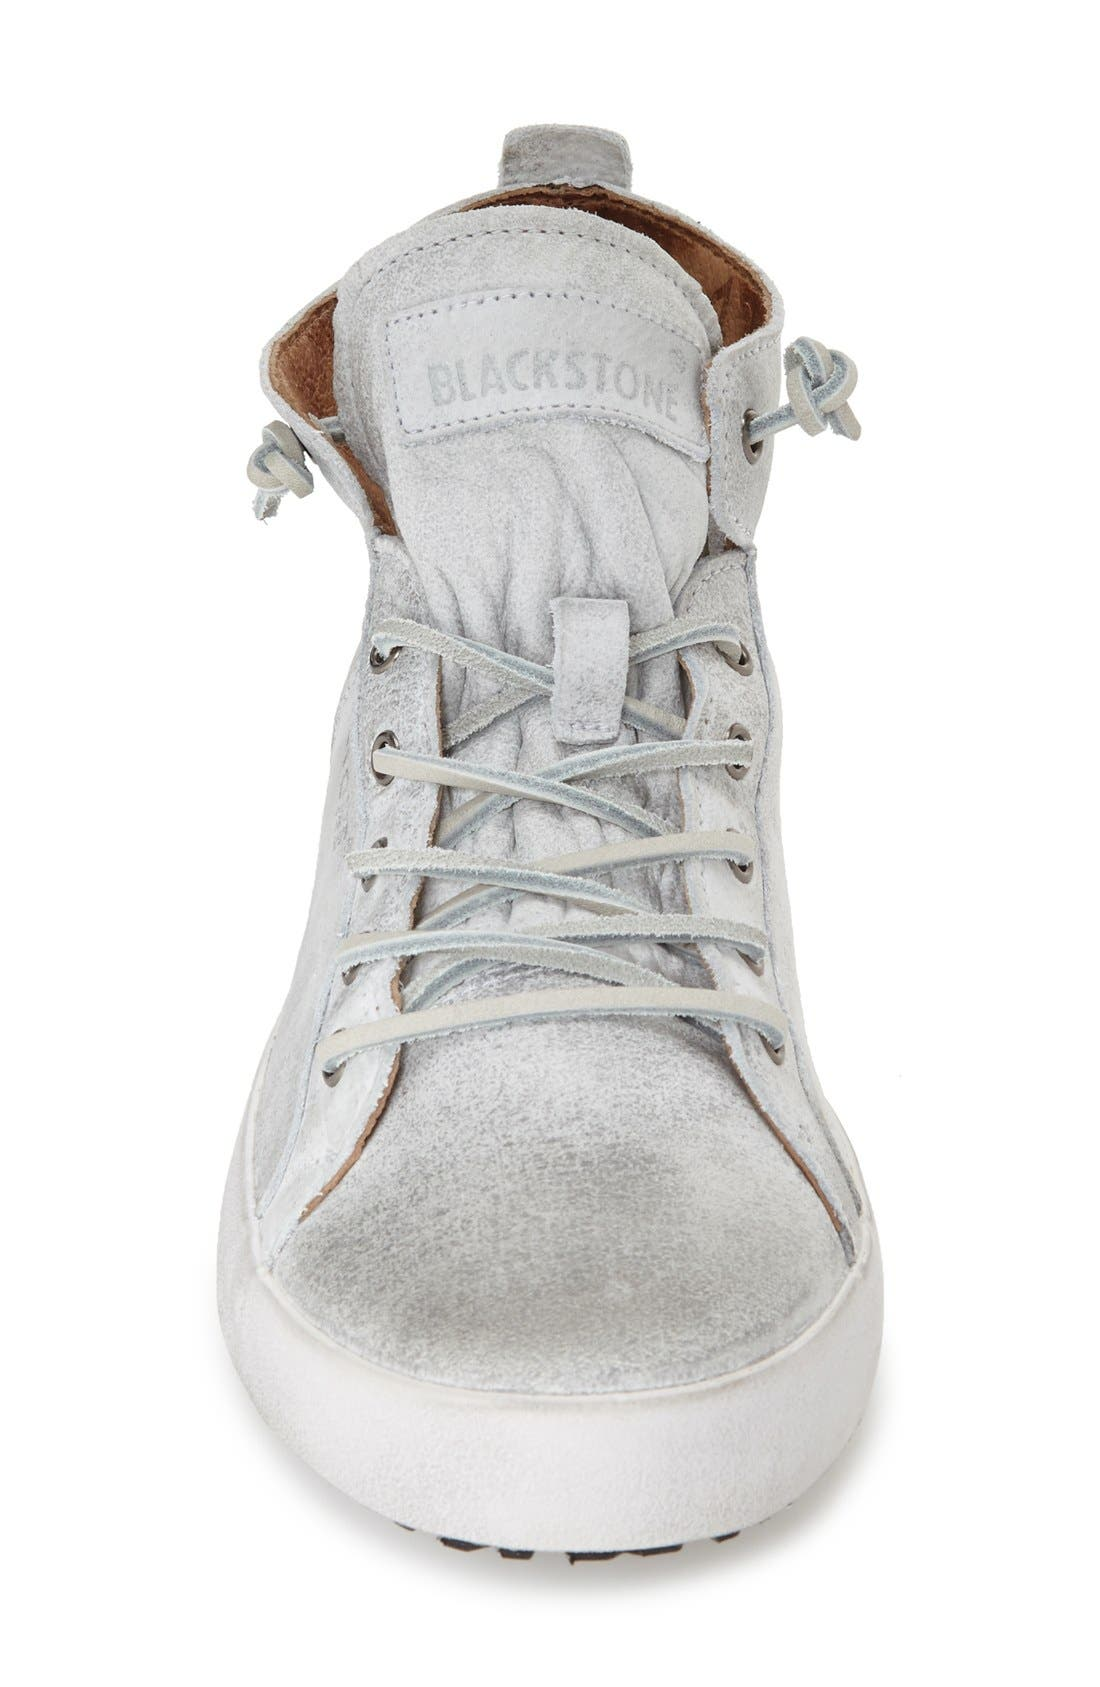 'JM 02' High Top Sneaker,                             Alternate thumbnail 3, color,                             White Leather